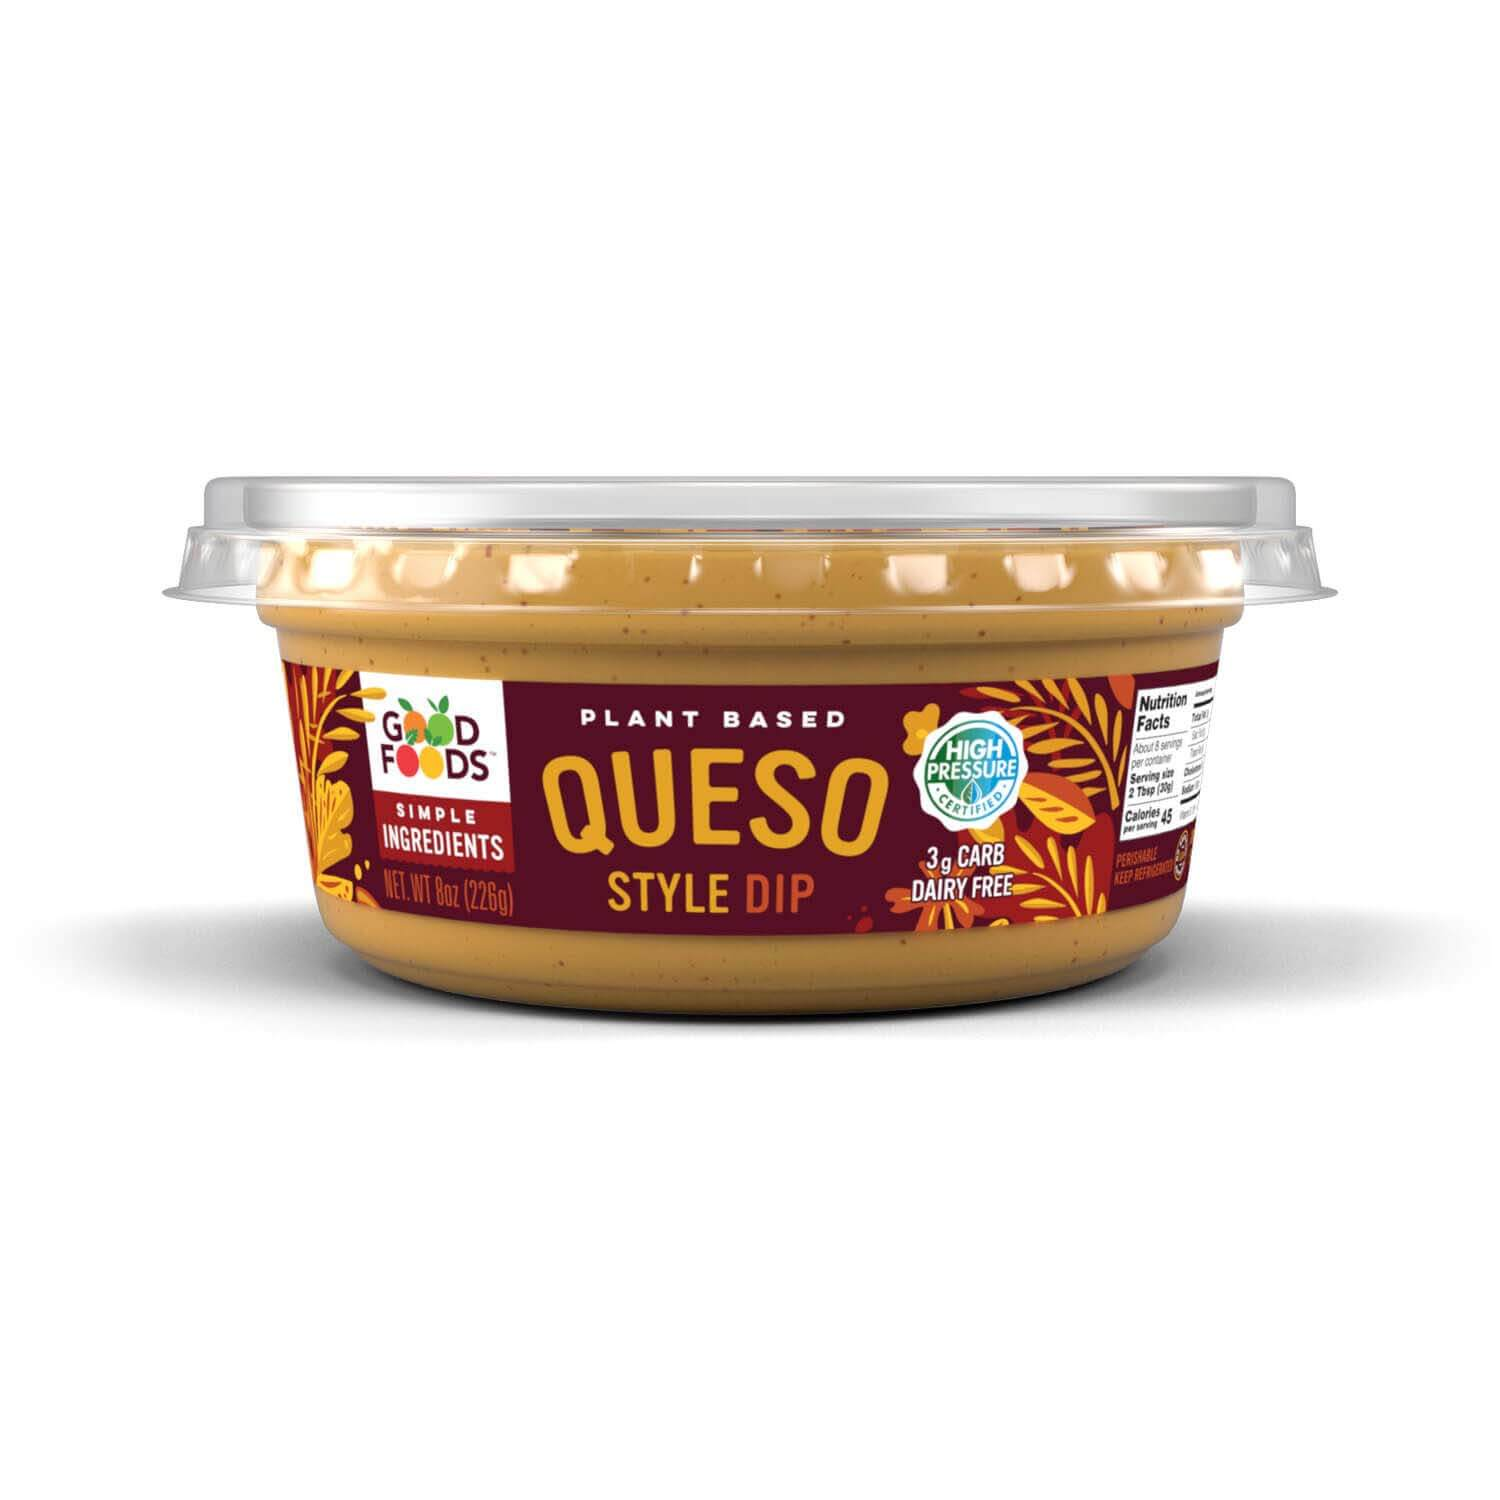 Good Foods Plant Based Queso Dip